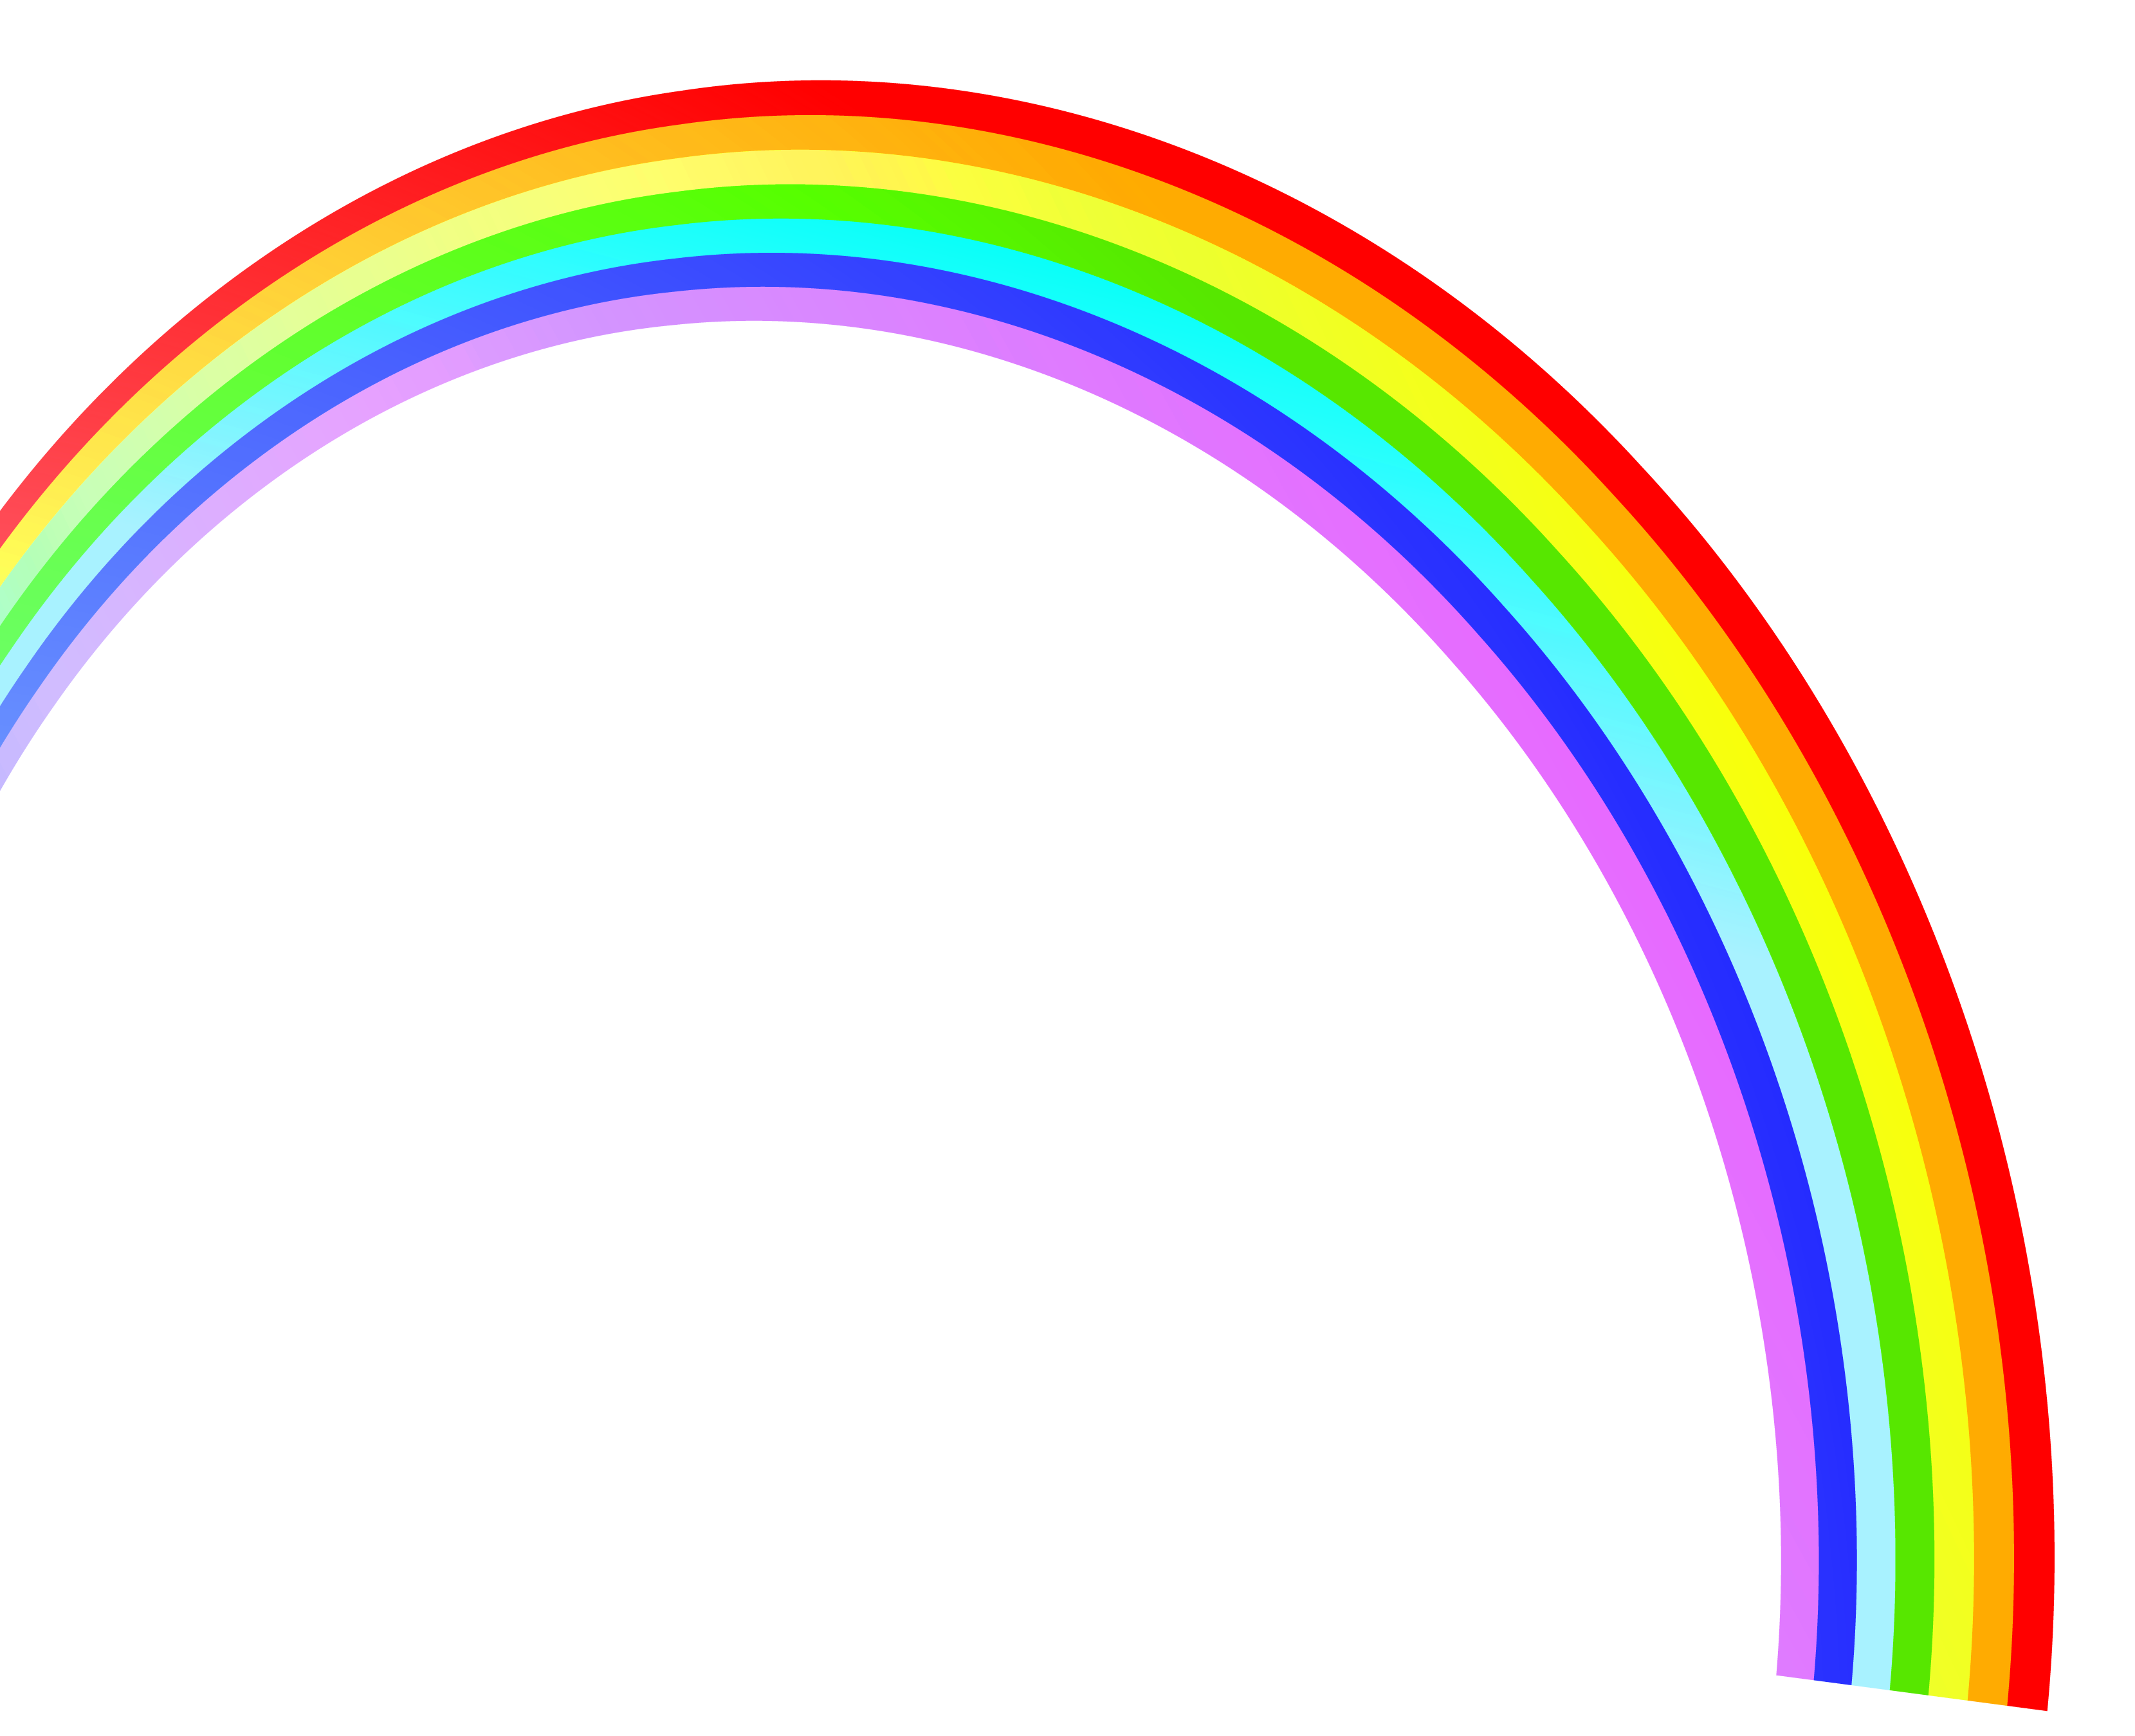 Rainbow Transparent Image